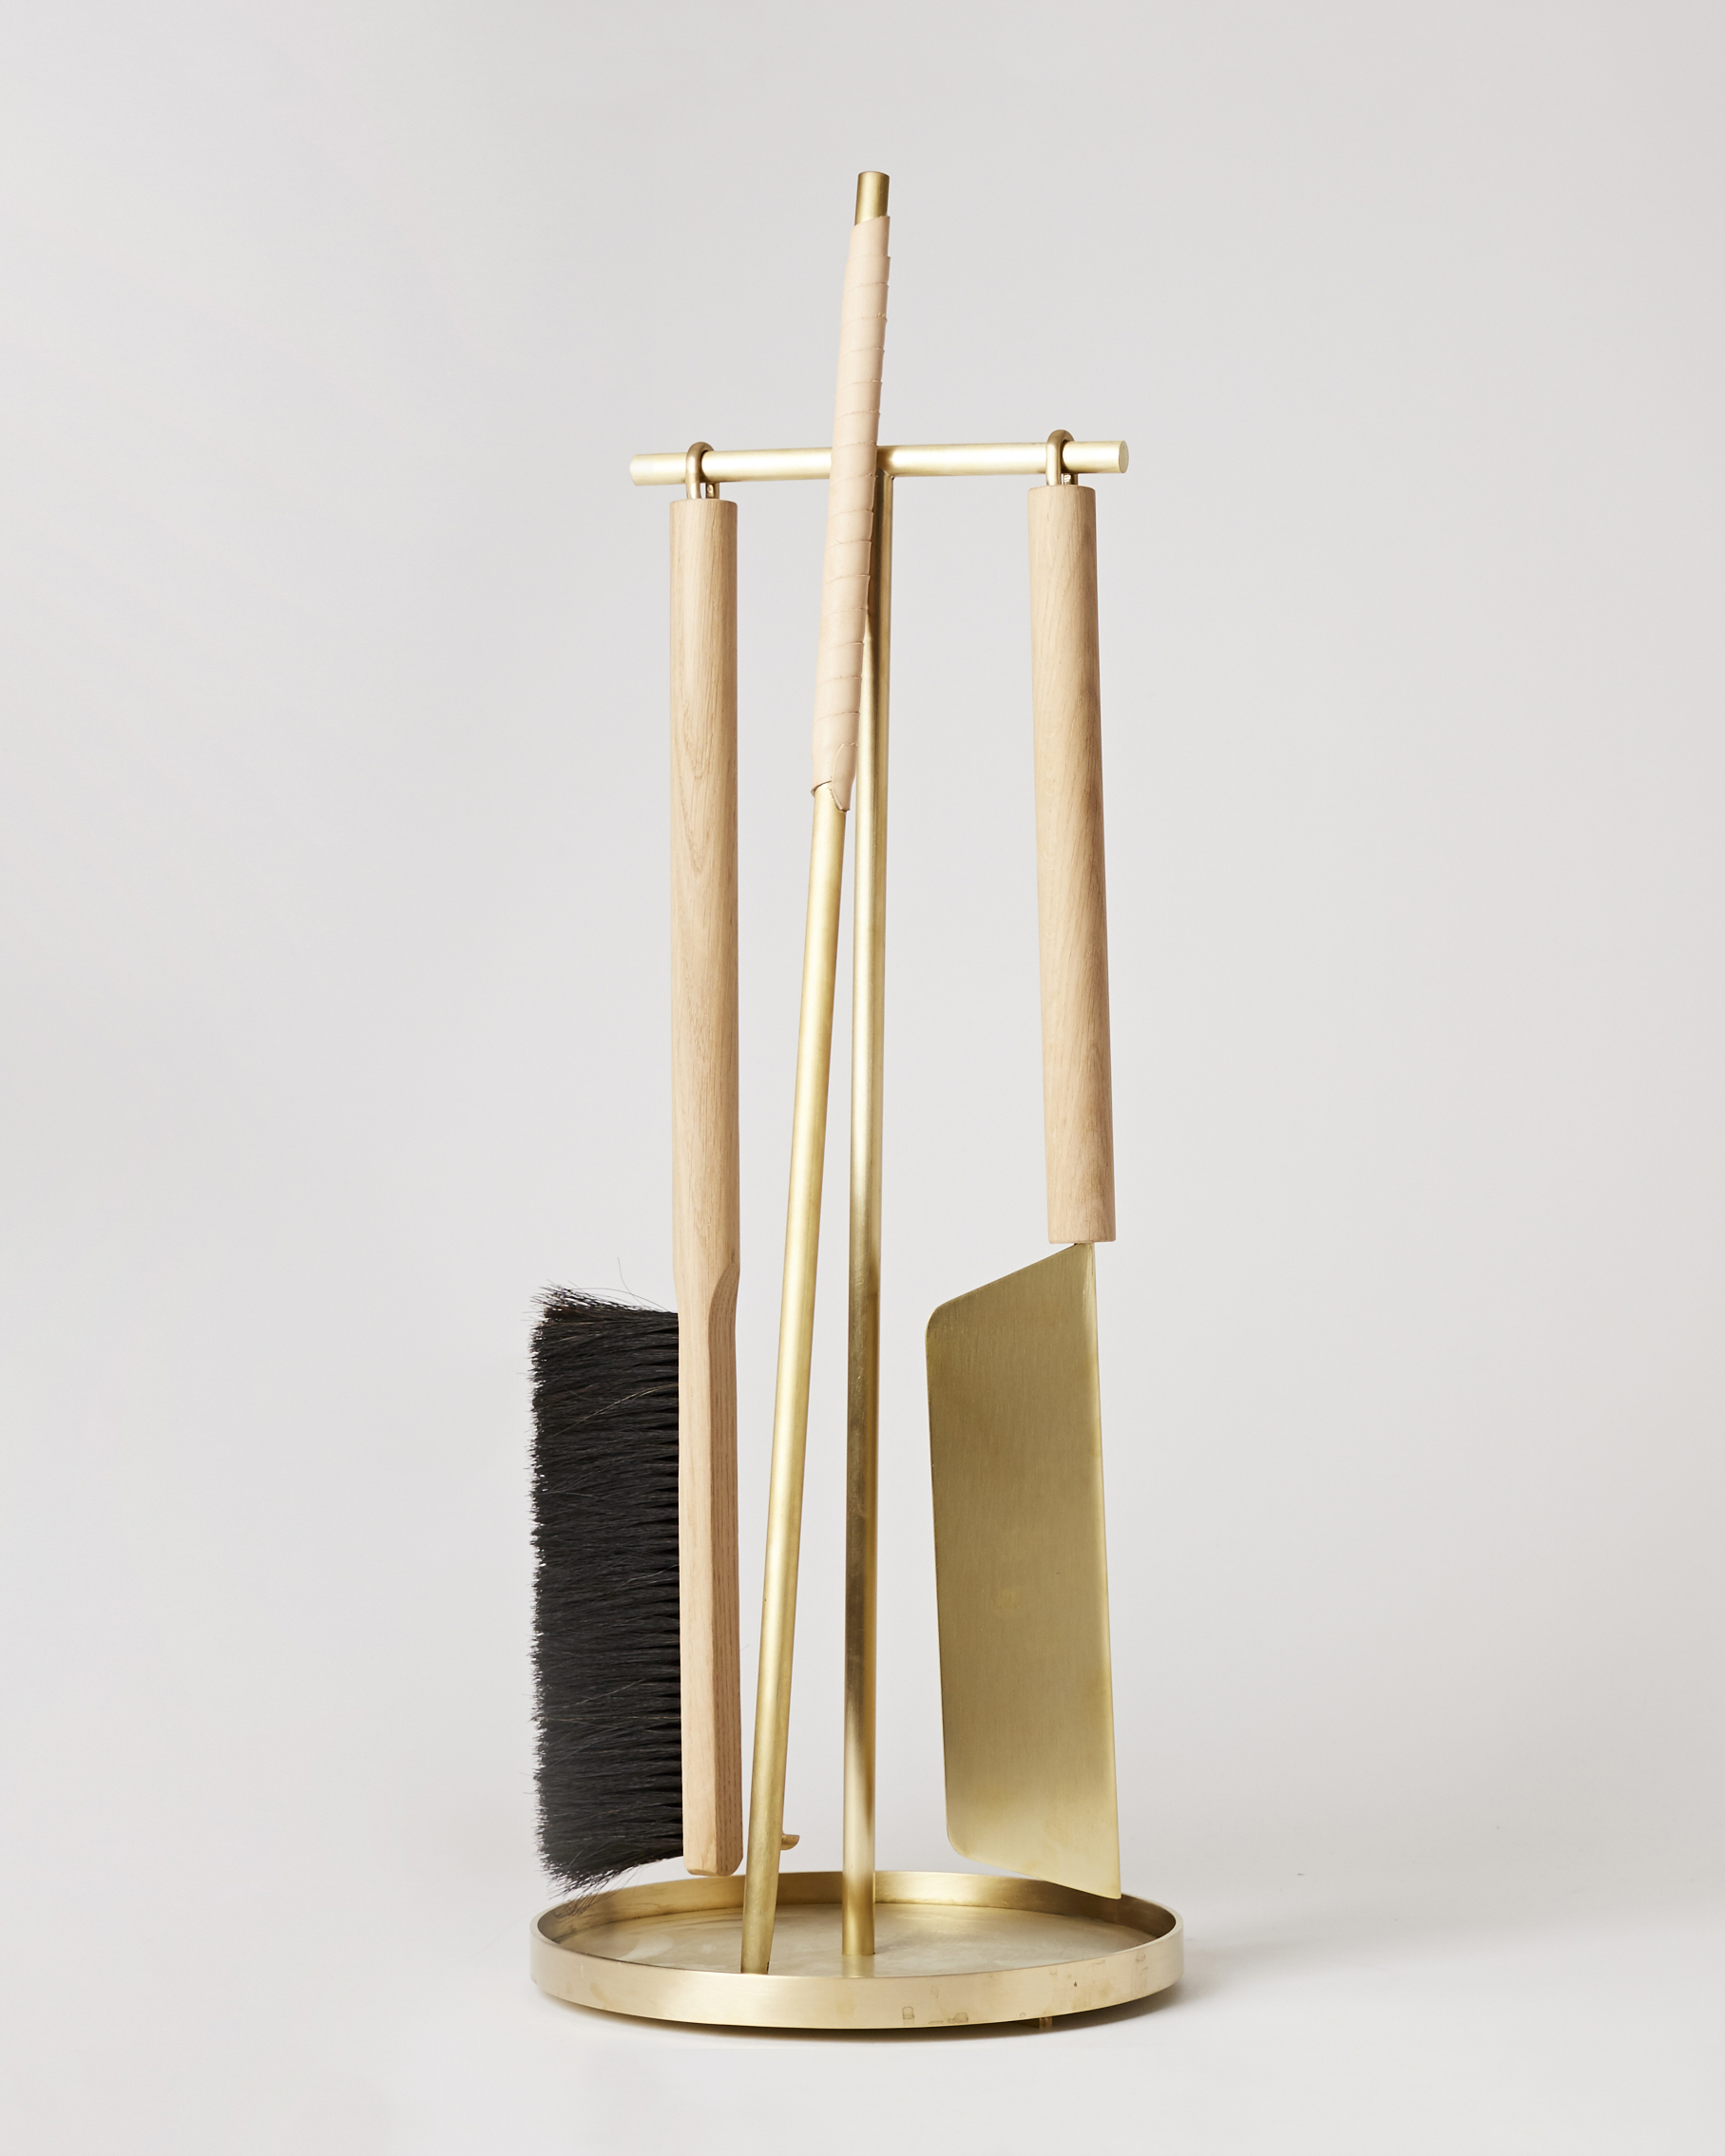 Thom Fougere Mjolk Fire Tools